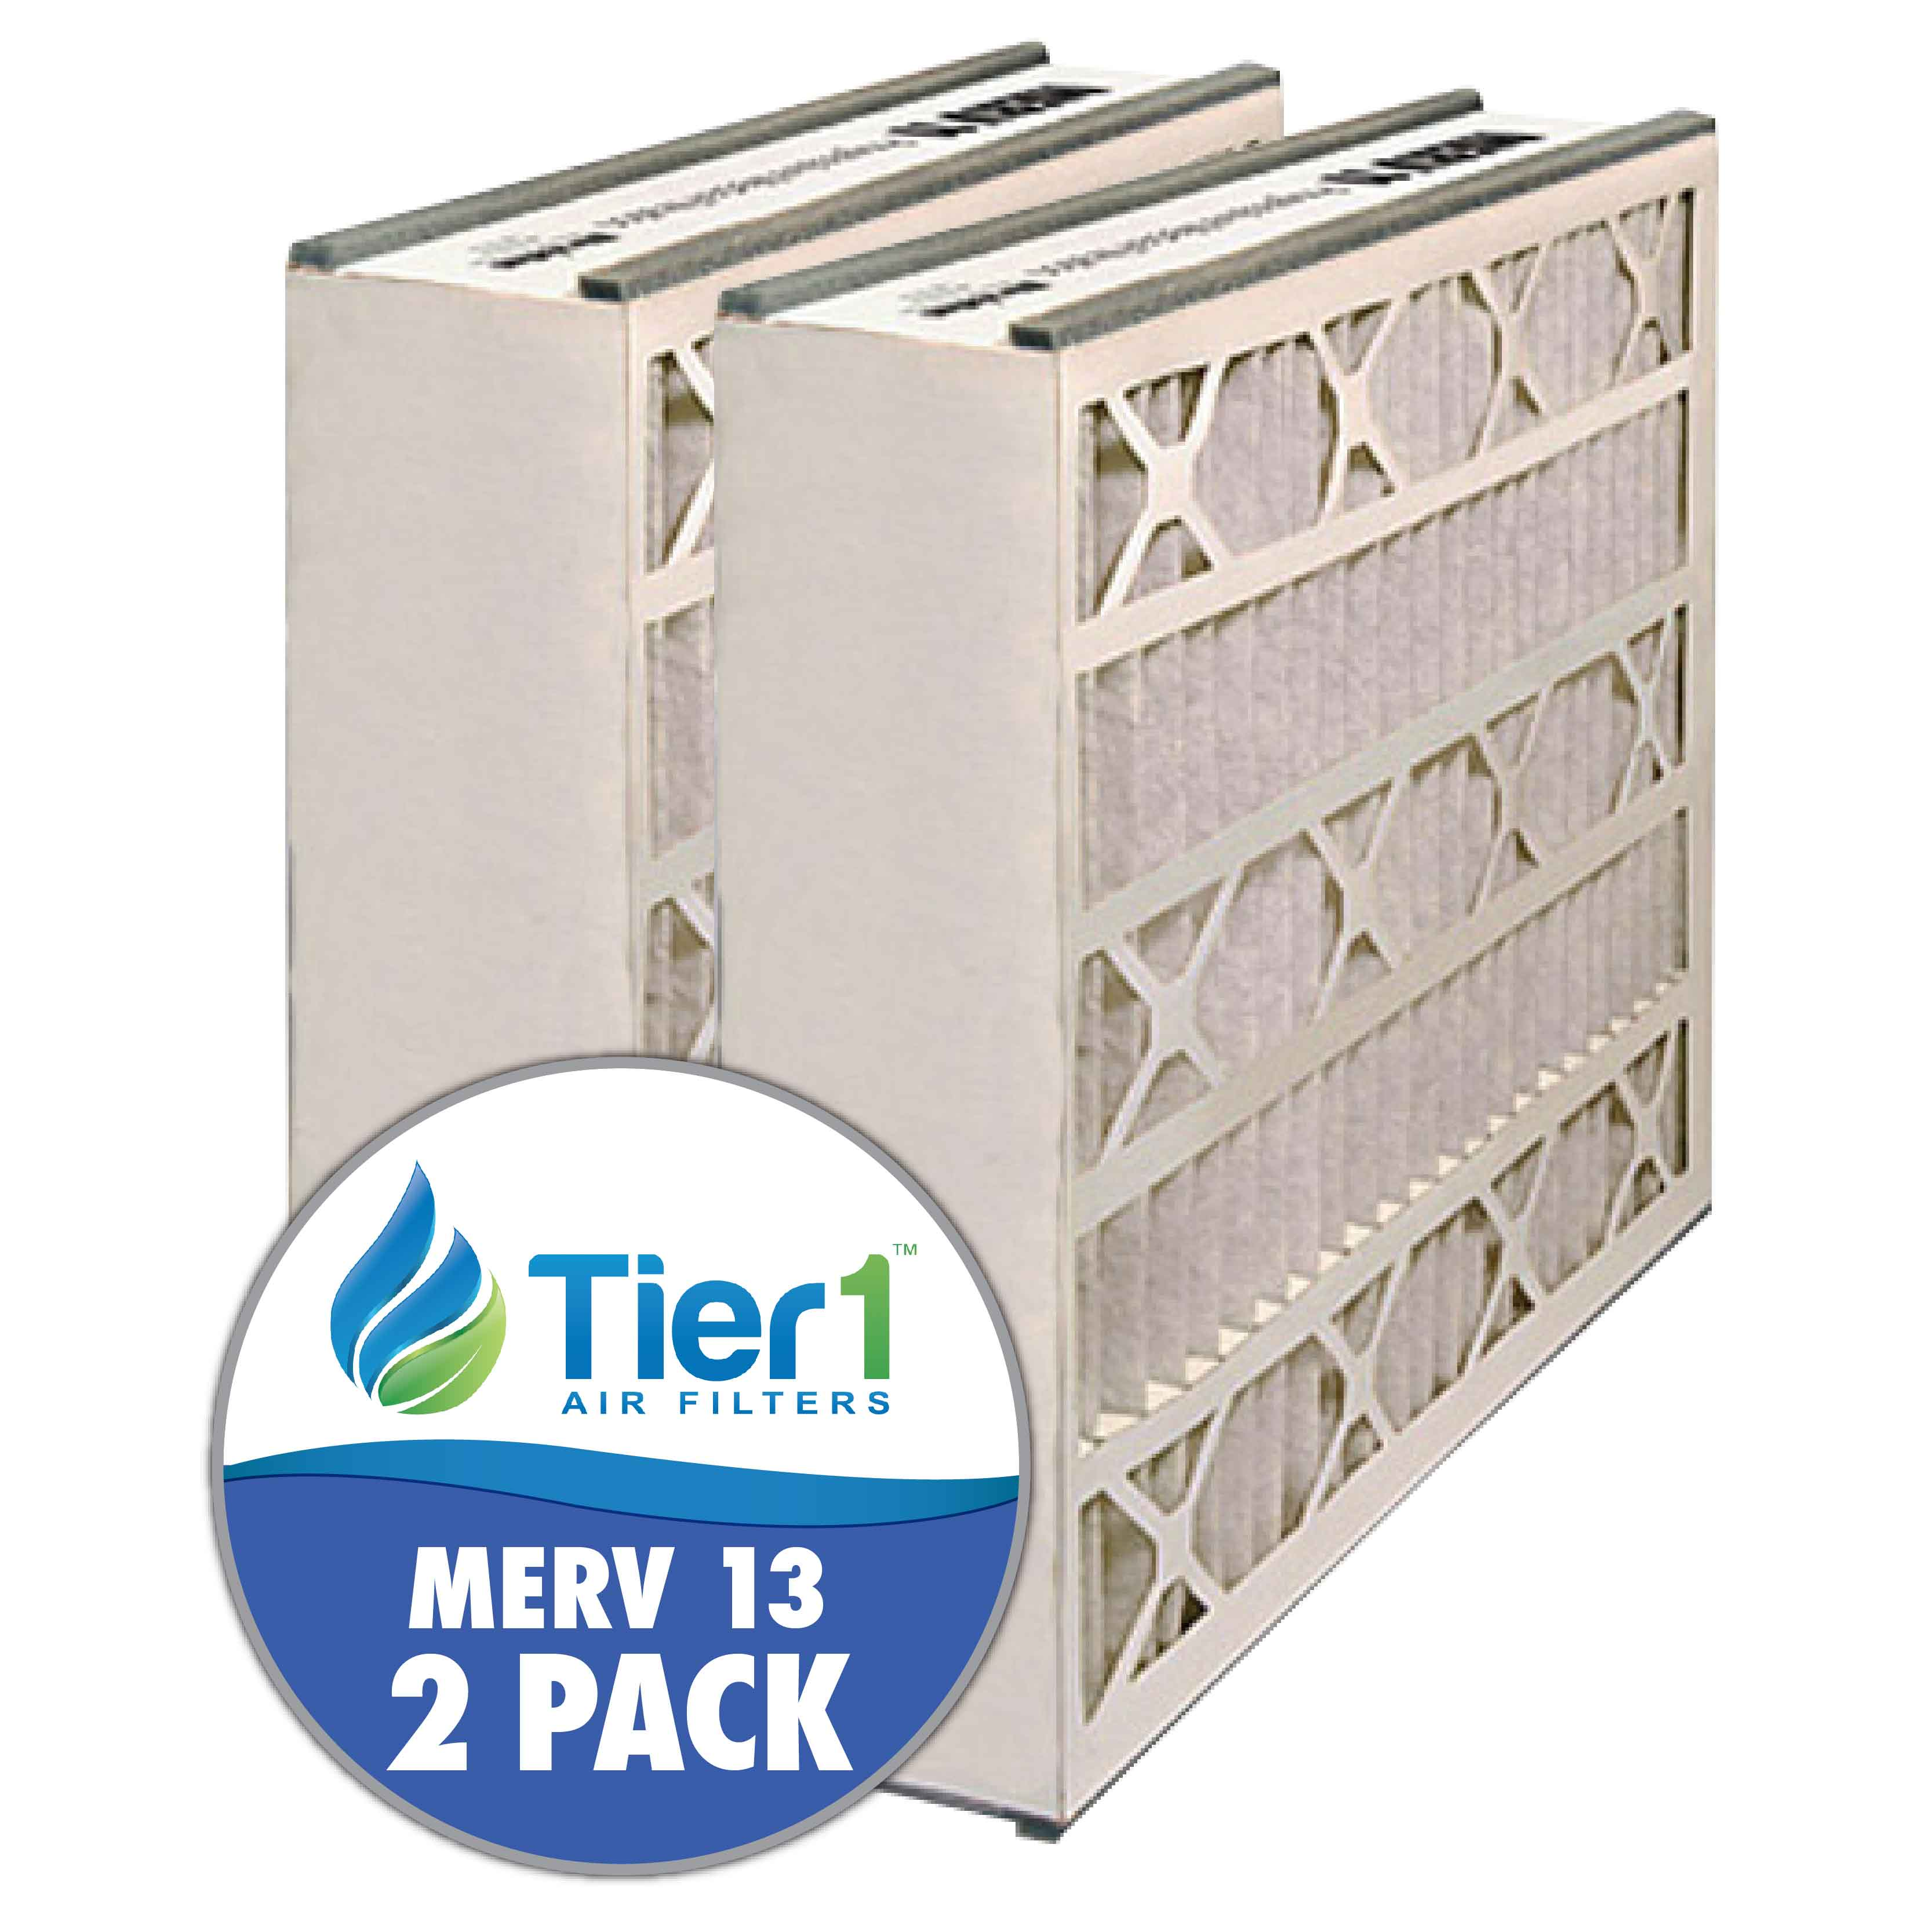 16x25x5 255649-105 & 259112-105 Trion / Air Bear MERV 13 Comparable Air Filter by Tier1 (2-pack) TIER1-RDPAB051625M13